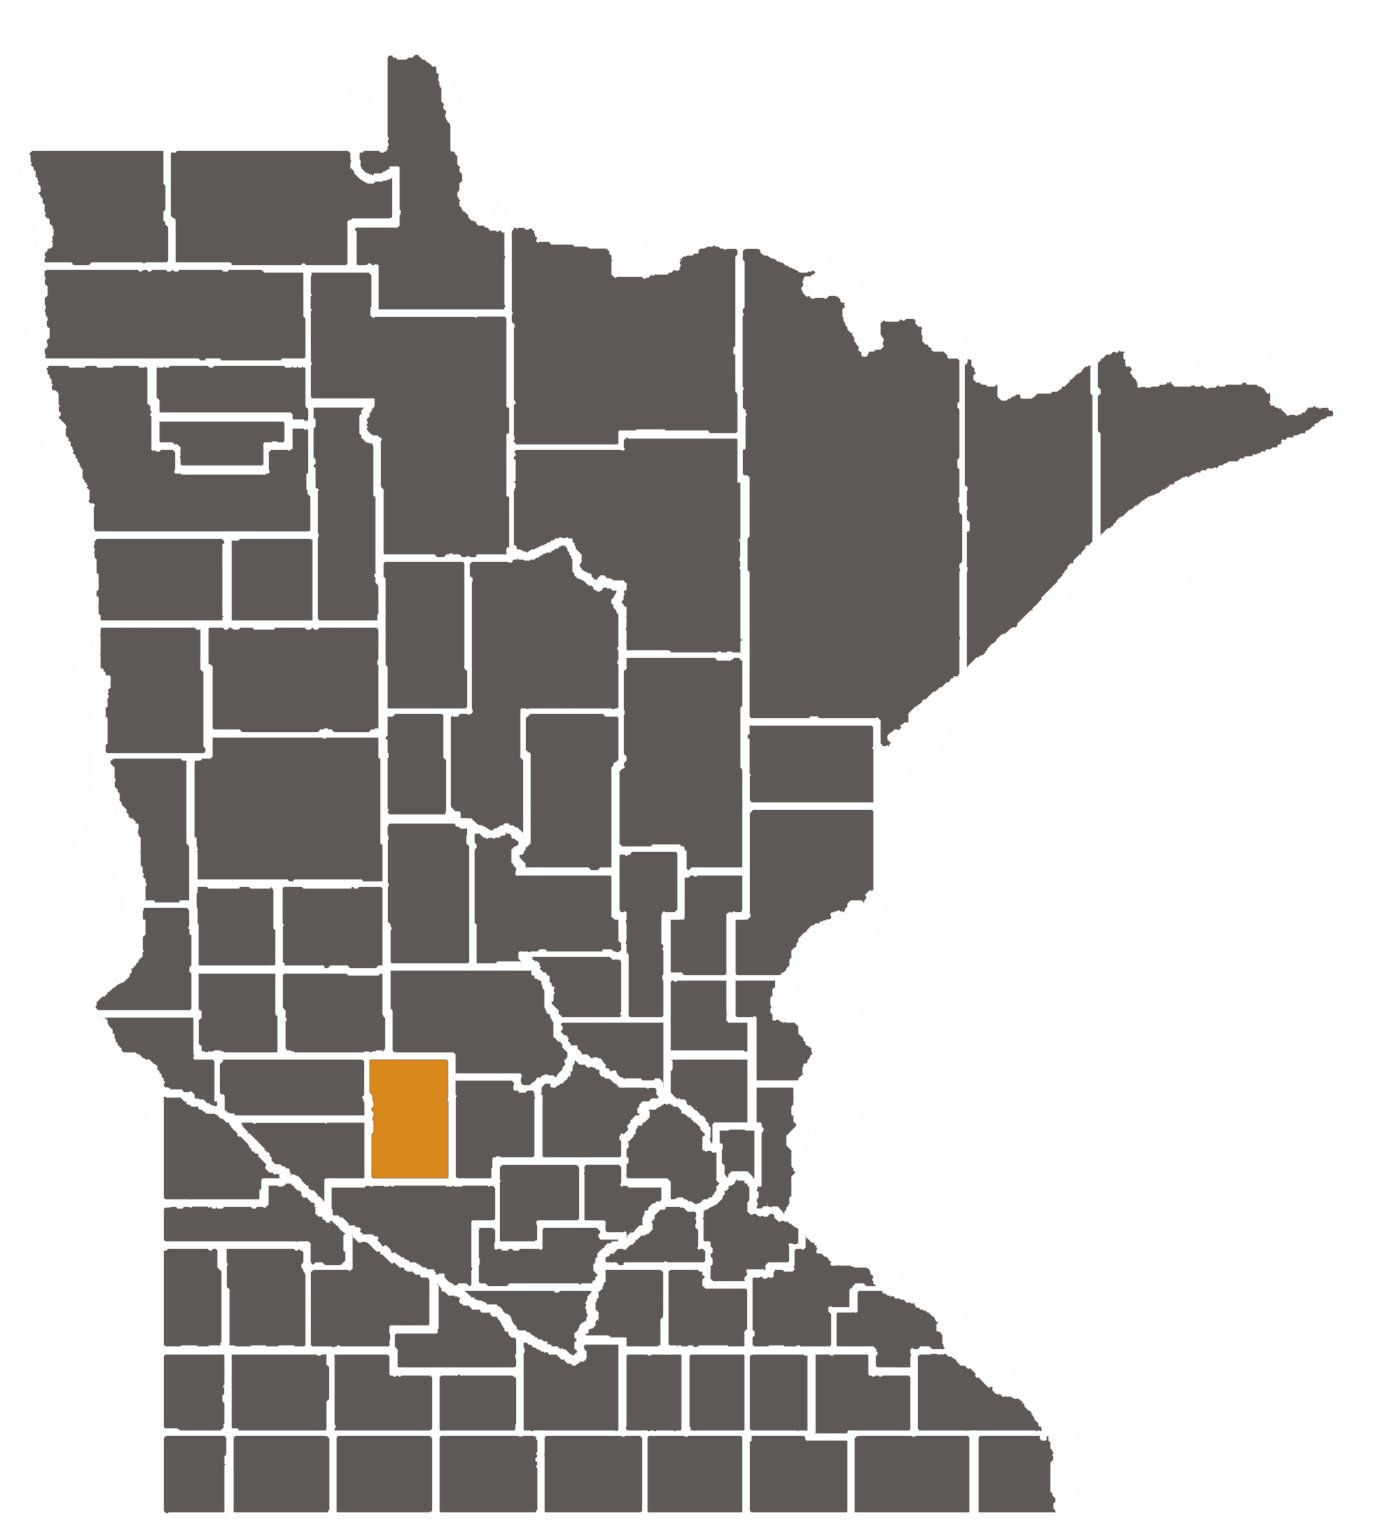 Minnesota map with Kandiyohi County highlighted.